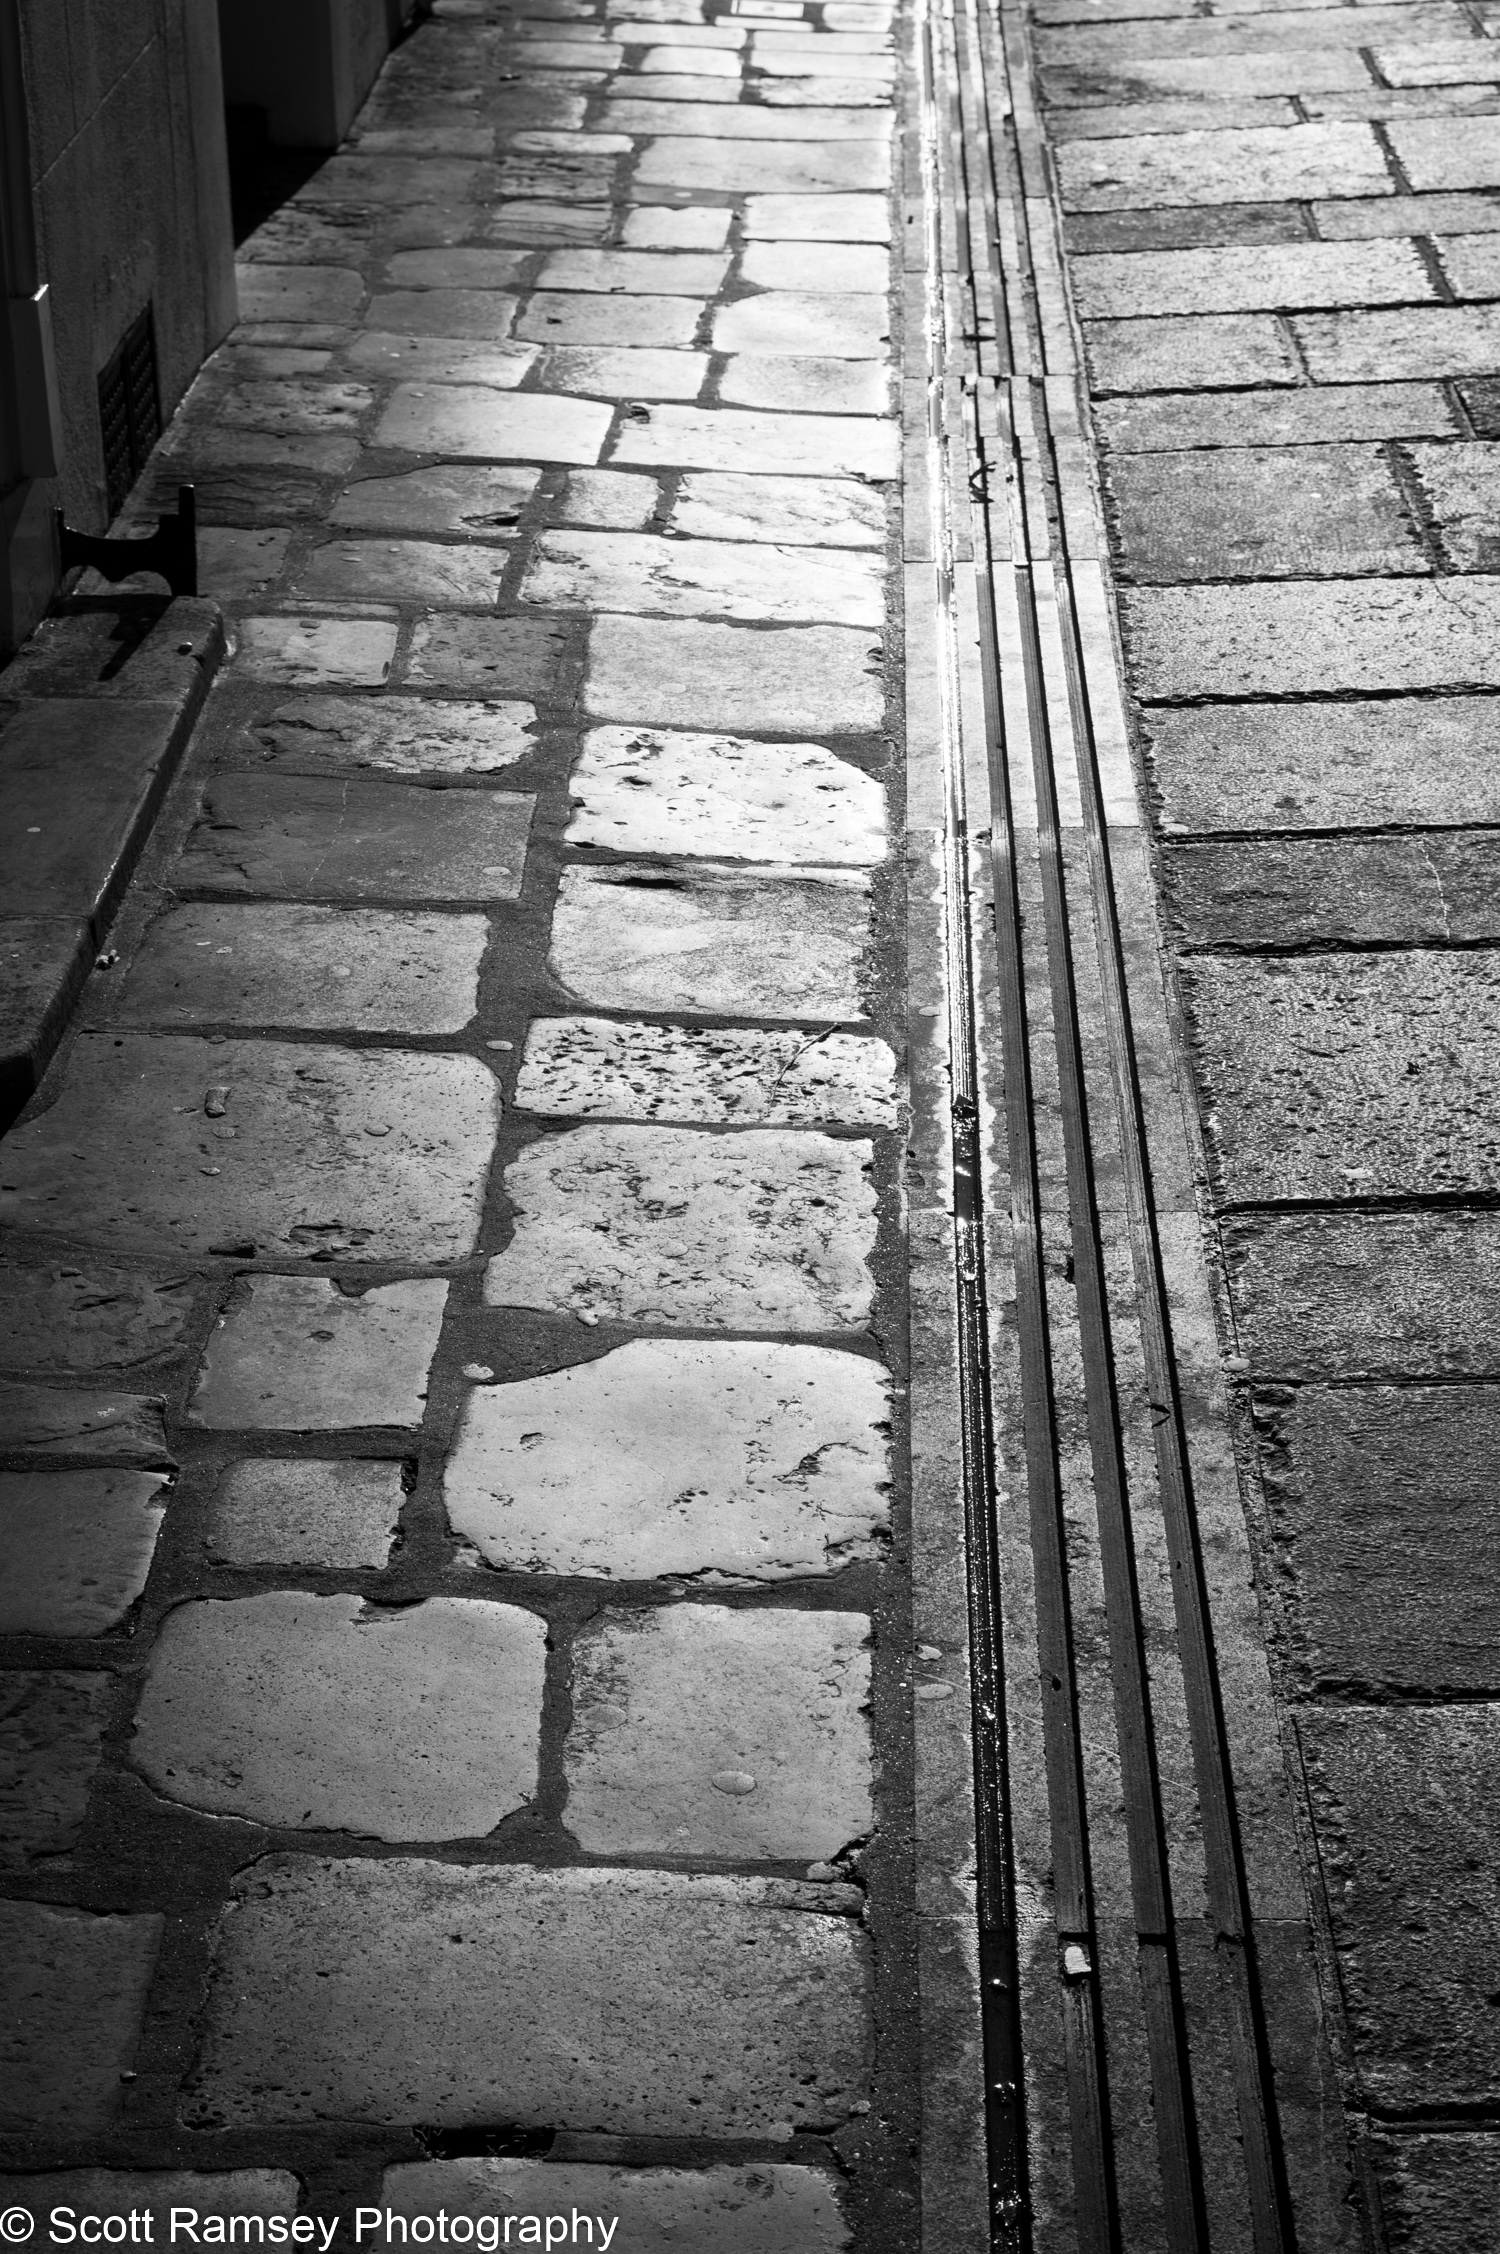 The winter sun reflects light on a wet cobbled street in Chichester, West Sussex, UK.